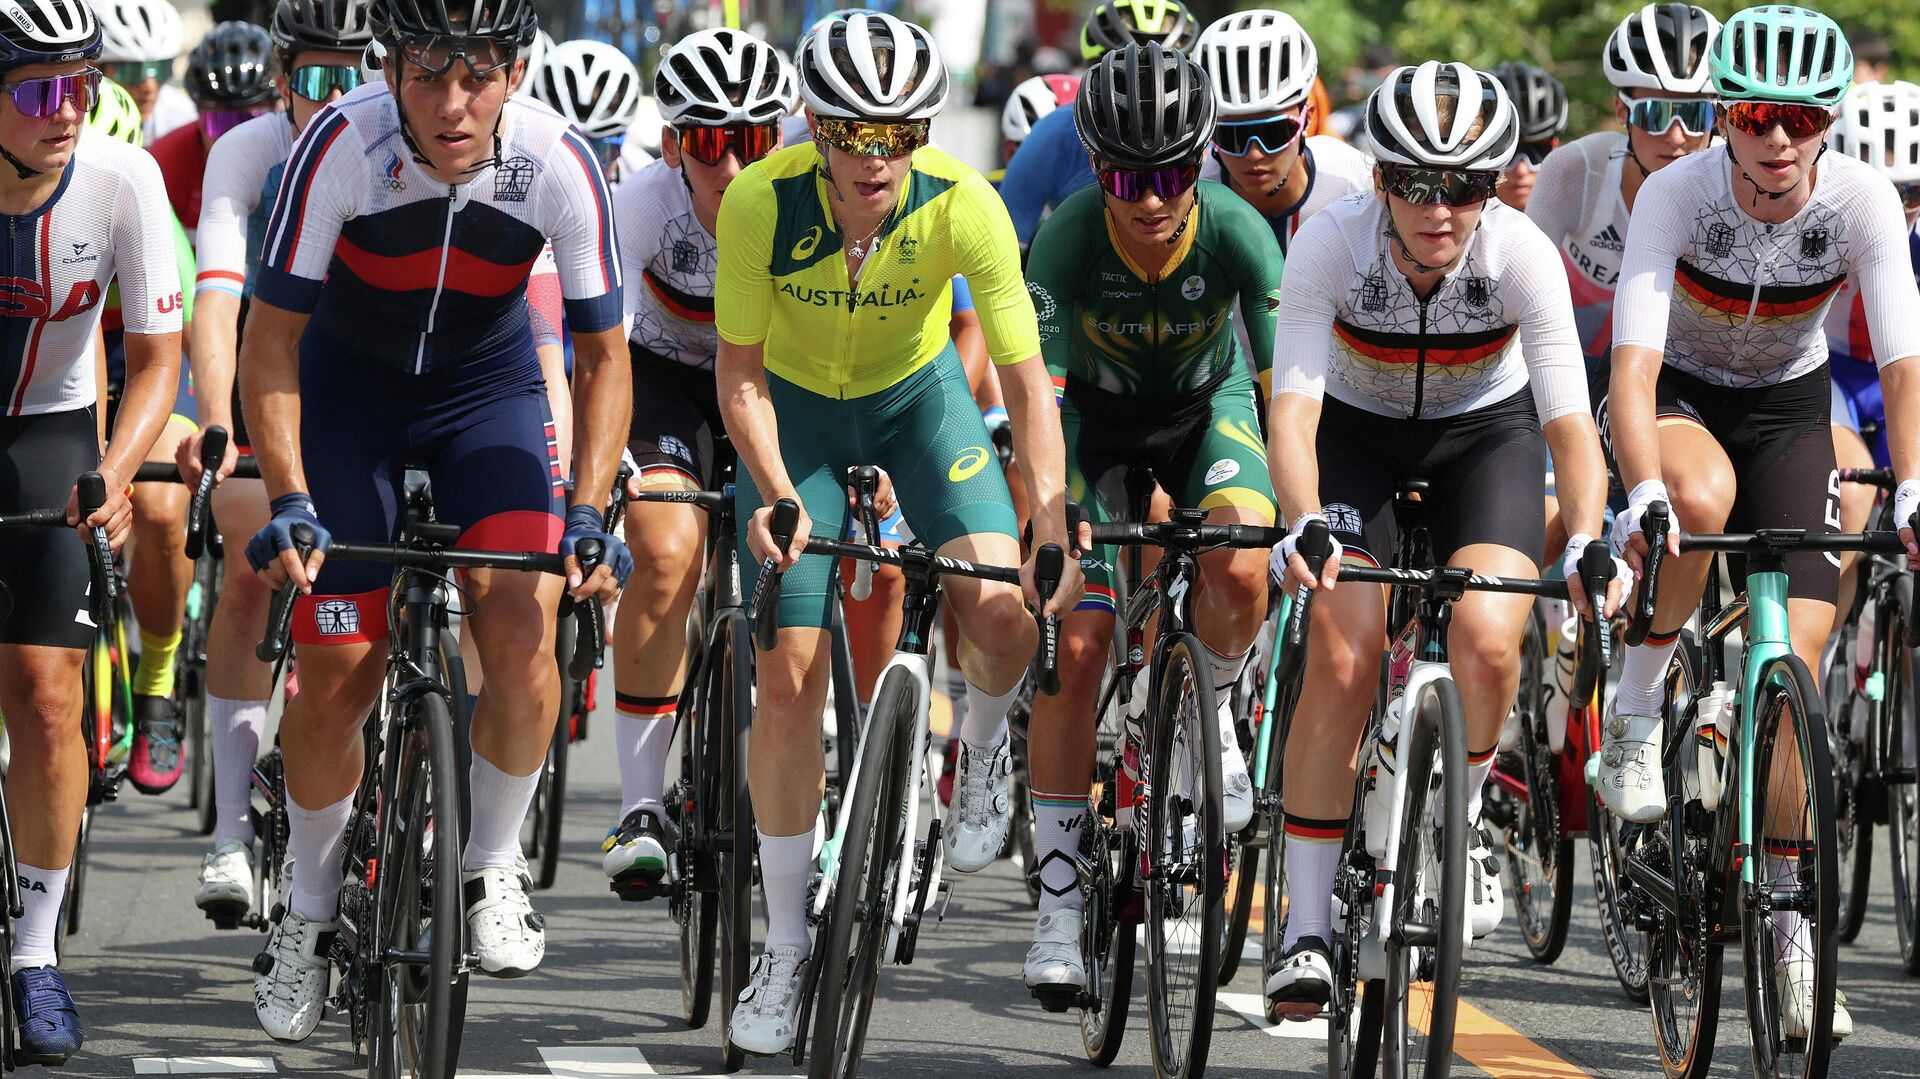 Russia's Tamara Dronova, Australia's Tiffany Cromwell and South Africa's Ashleigh Moolman-Pasio compete during the women's cycling road race at the Fuji International Speedway in Oyama, Japan, at the Tokyo 2020 Olympic Games on July 25, 2021. (Photo by Michael Steele / POOL / AFP) - РИА Новости, 1920, 25.09.2021